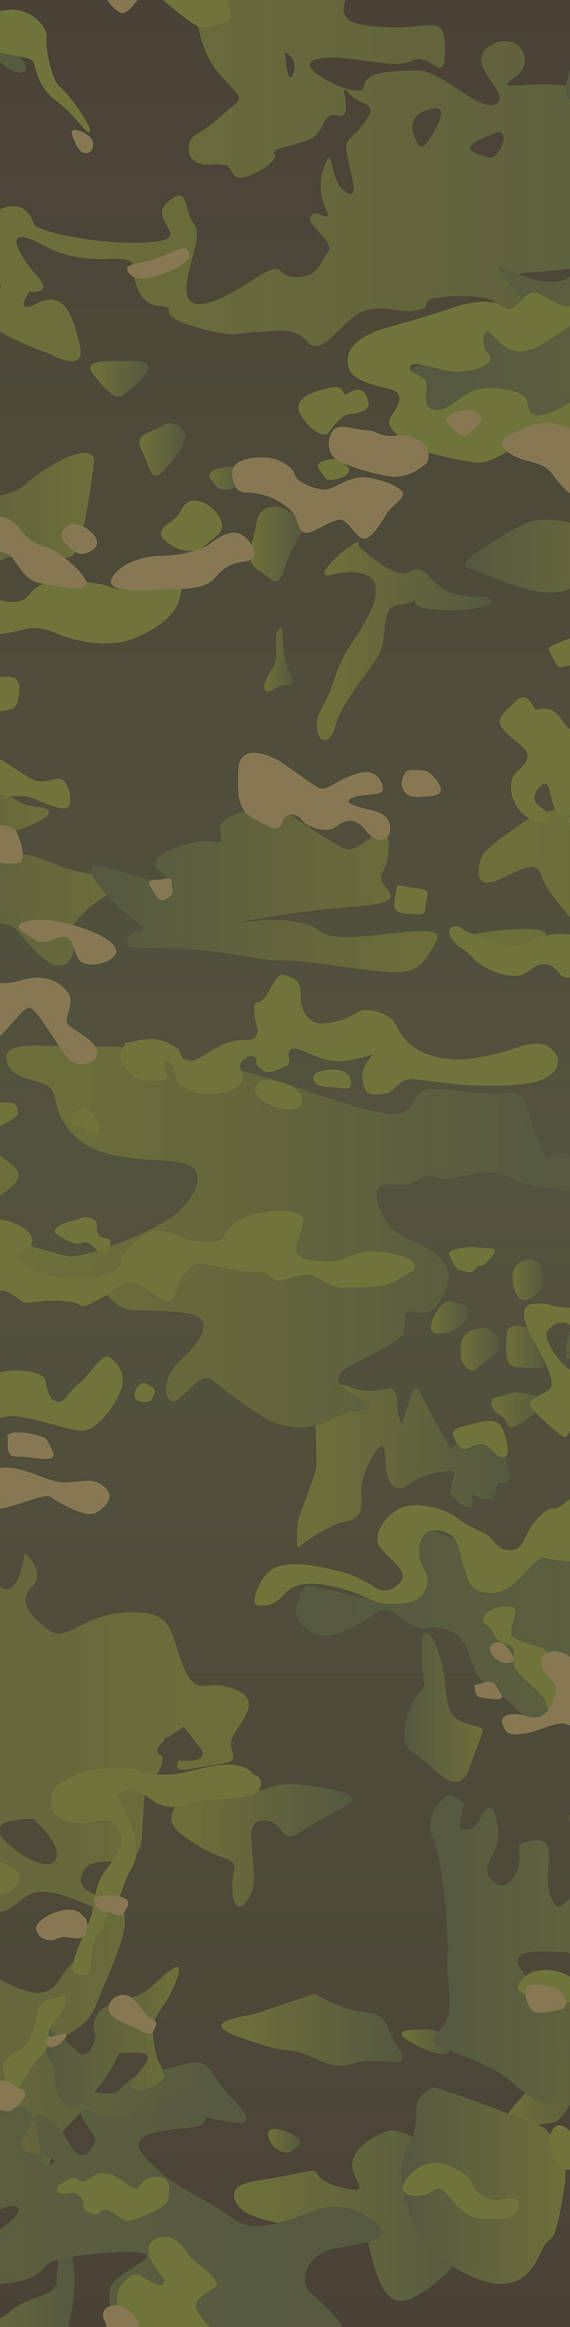 Original full-size Multicam Tropic (scorpion) camouflage pattern for print. Copy of tropic/jungle version of legendary camo pattern in vector ready-to-print format. You can zoom it for any size without quality lose. Handly created in Photoshop and Illustrator and tested for vector errors. File format: .eps (can opened with any graphics software), ~1 Mb. Bonus: converted picture in .png, 5980x2400 px, RGB, ~1,65 Mb. You can use this pattern for personal reasons or small commercial reas...